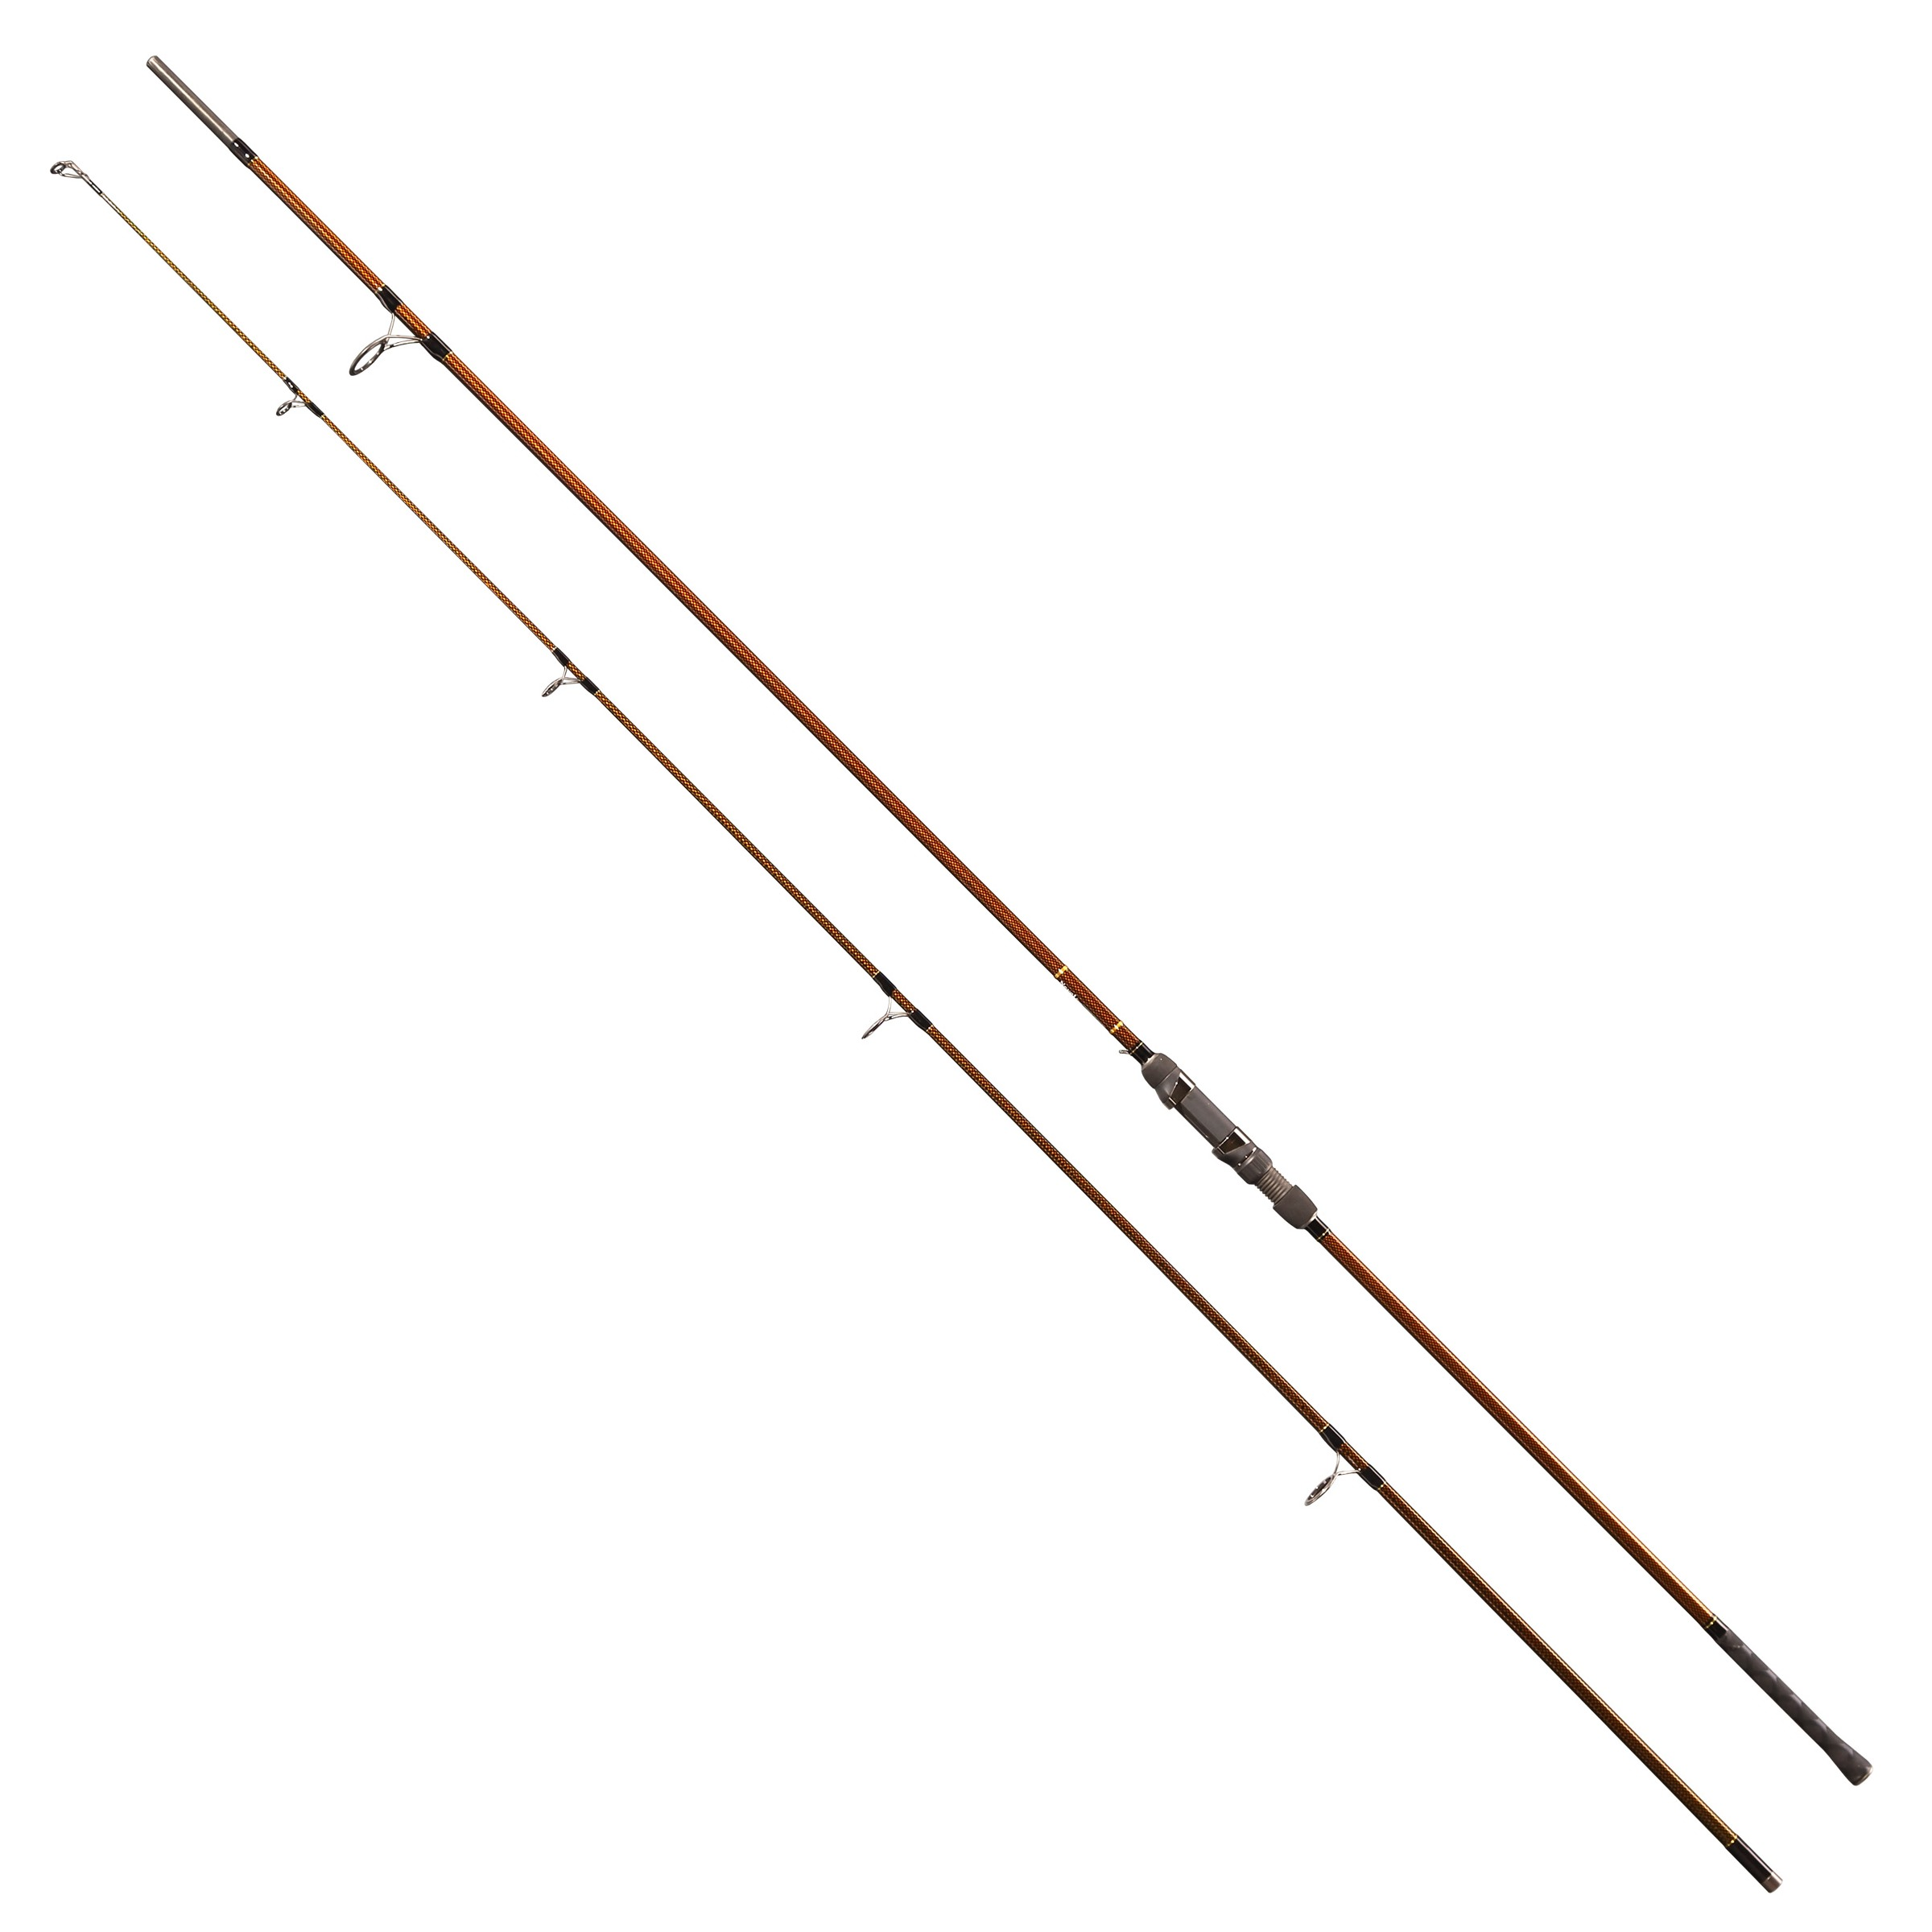 Prut NovellCarp 12ft, 3.00lb 2pc